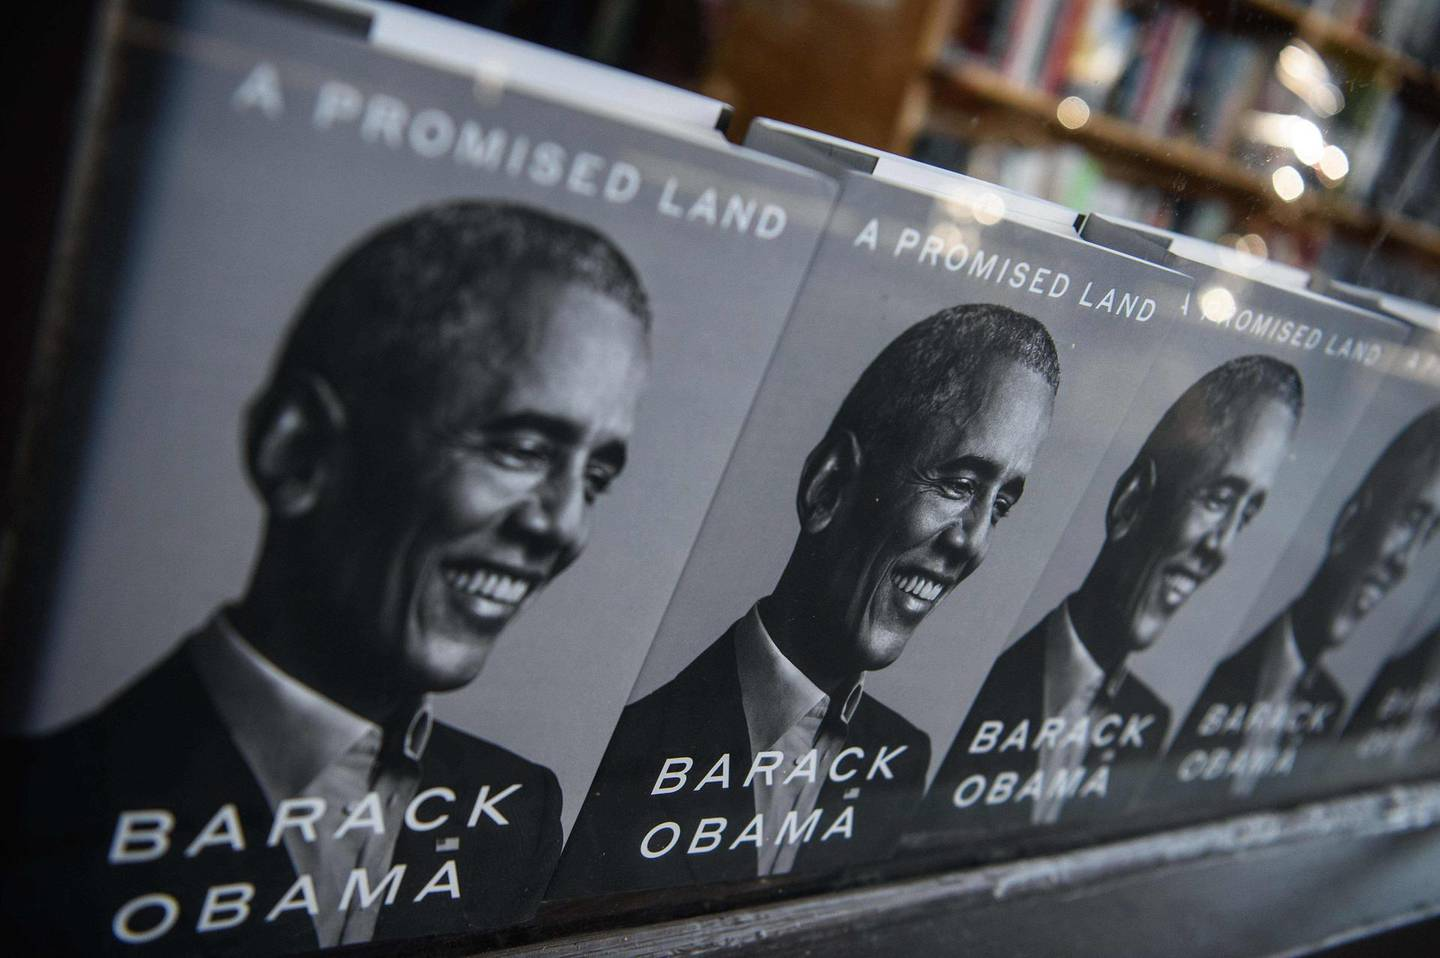 """Former US President Barack Obama's new book """"A Promised Land"""" is seen in a bookstore in Washington, DC, on November 17, 2020. Former US president Barack Obama writes in a new memoir that he is still torn by his choices in the Arab Spring, acknowledging he was inconsistent in which leaders to nudge out of power. / AFP / NICHOLAS KAMM"""